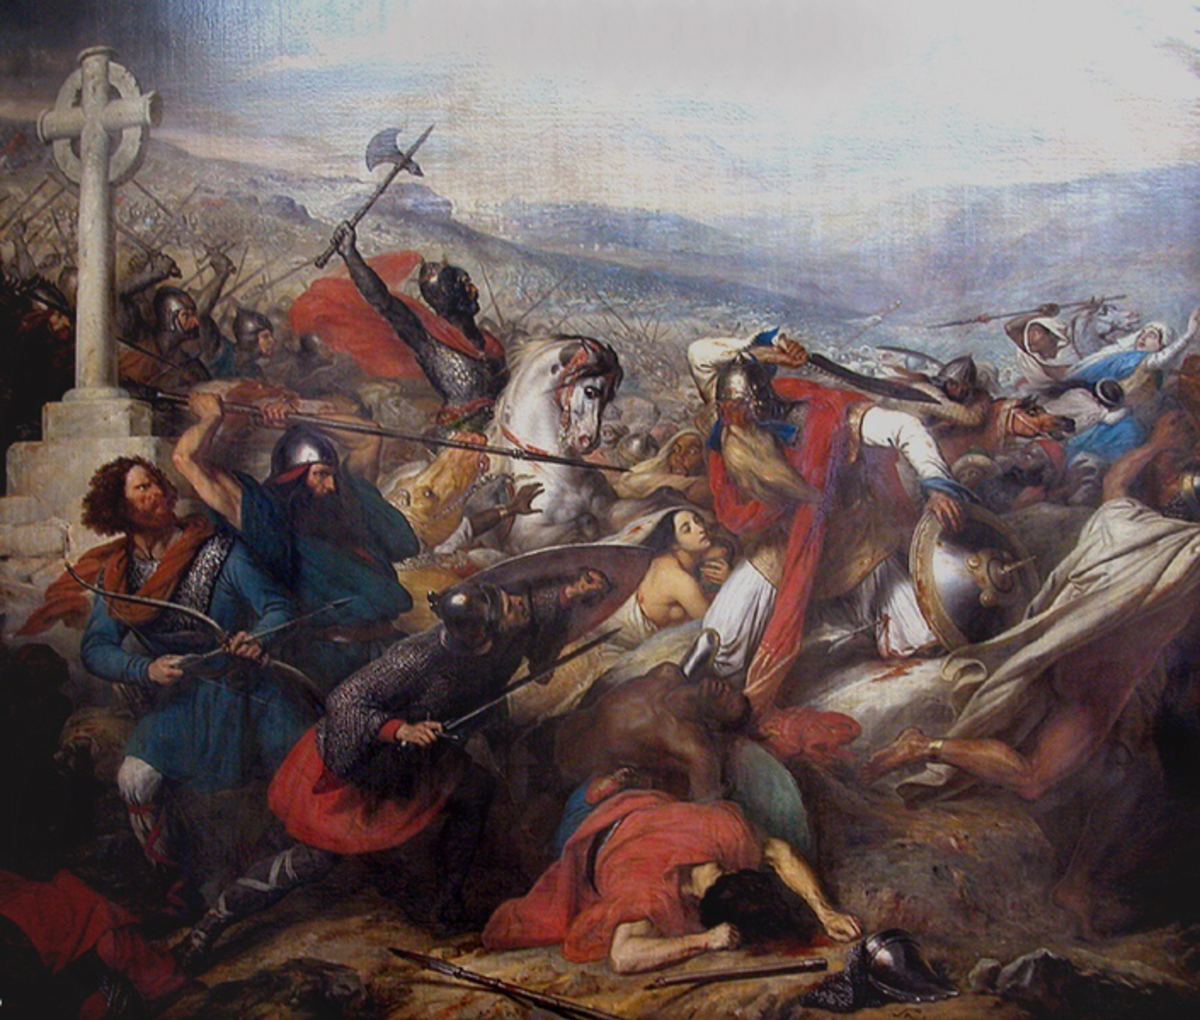 Muslim Invasions: The Battle Of Tours